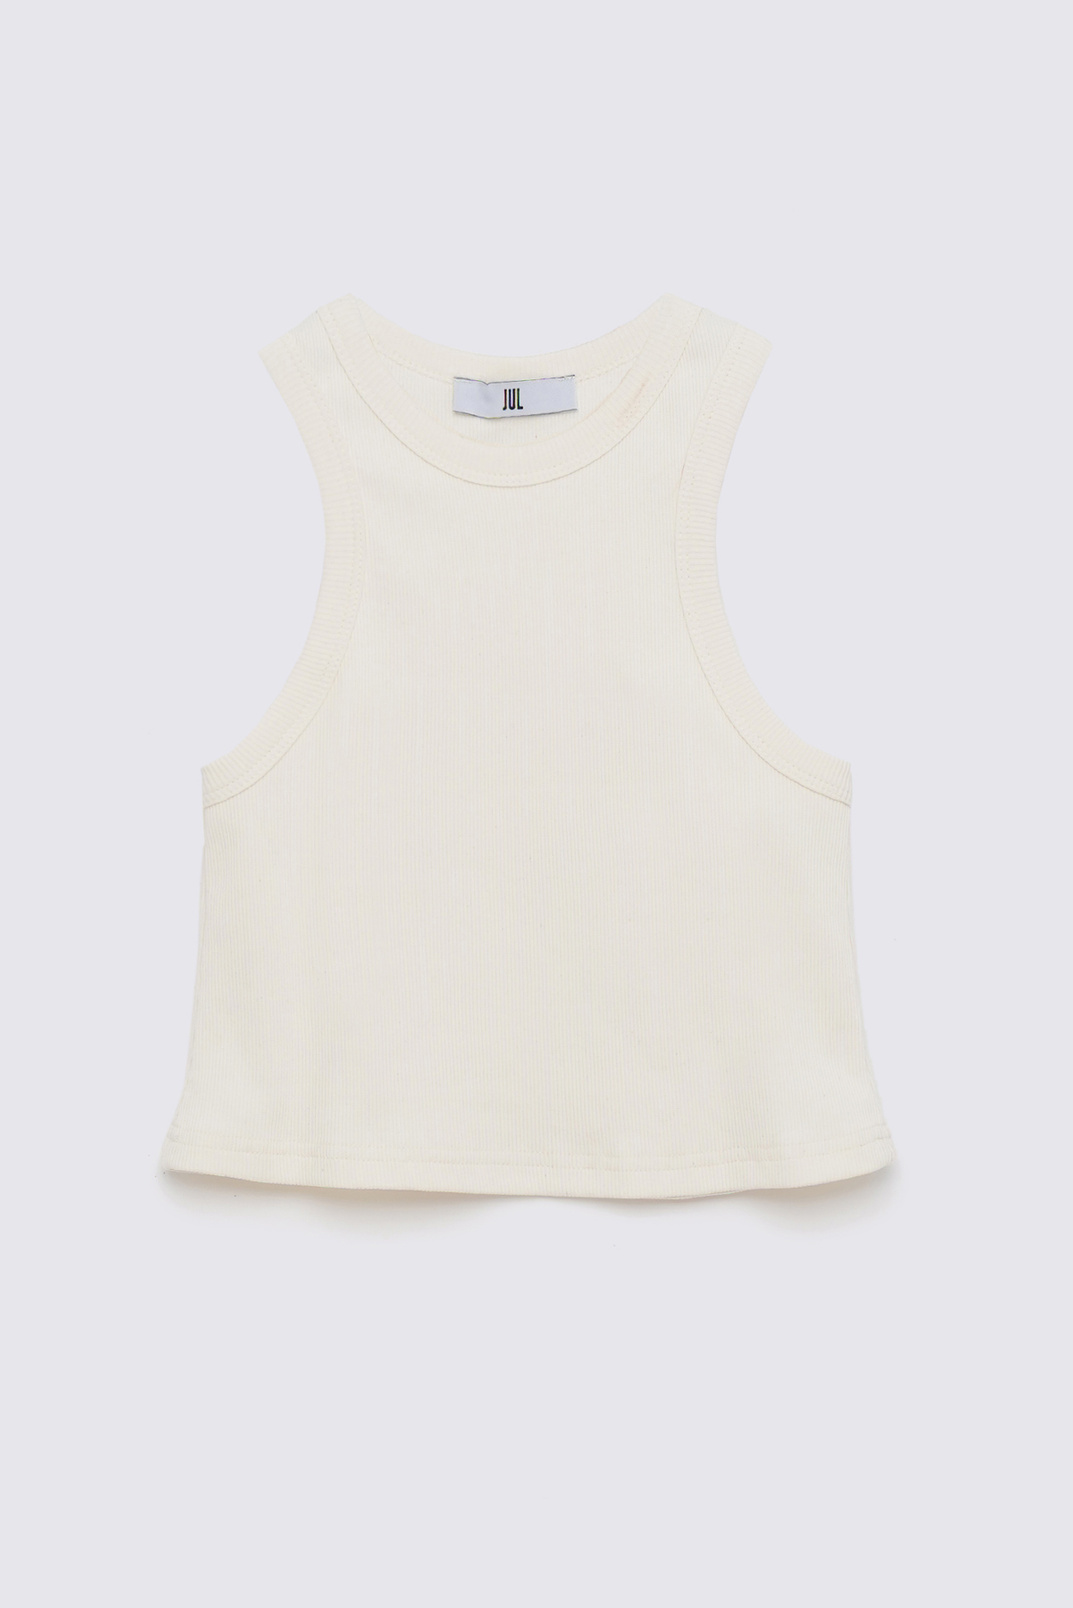 Basic shirt, Milky, S